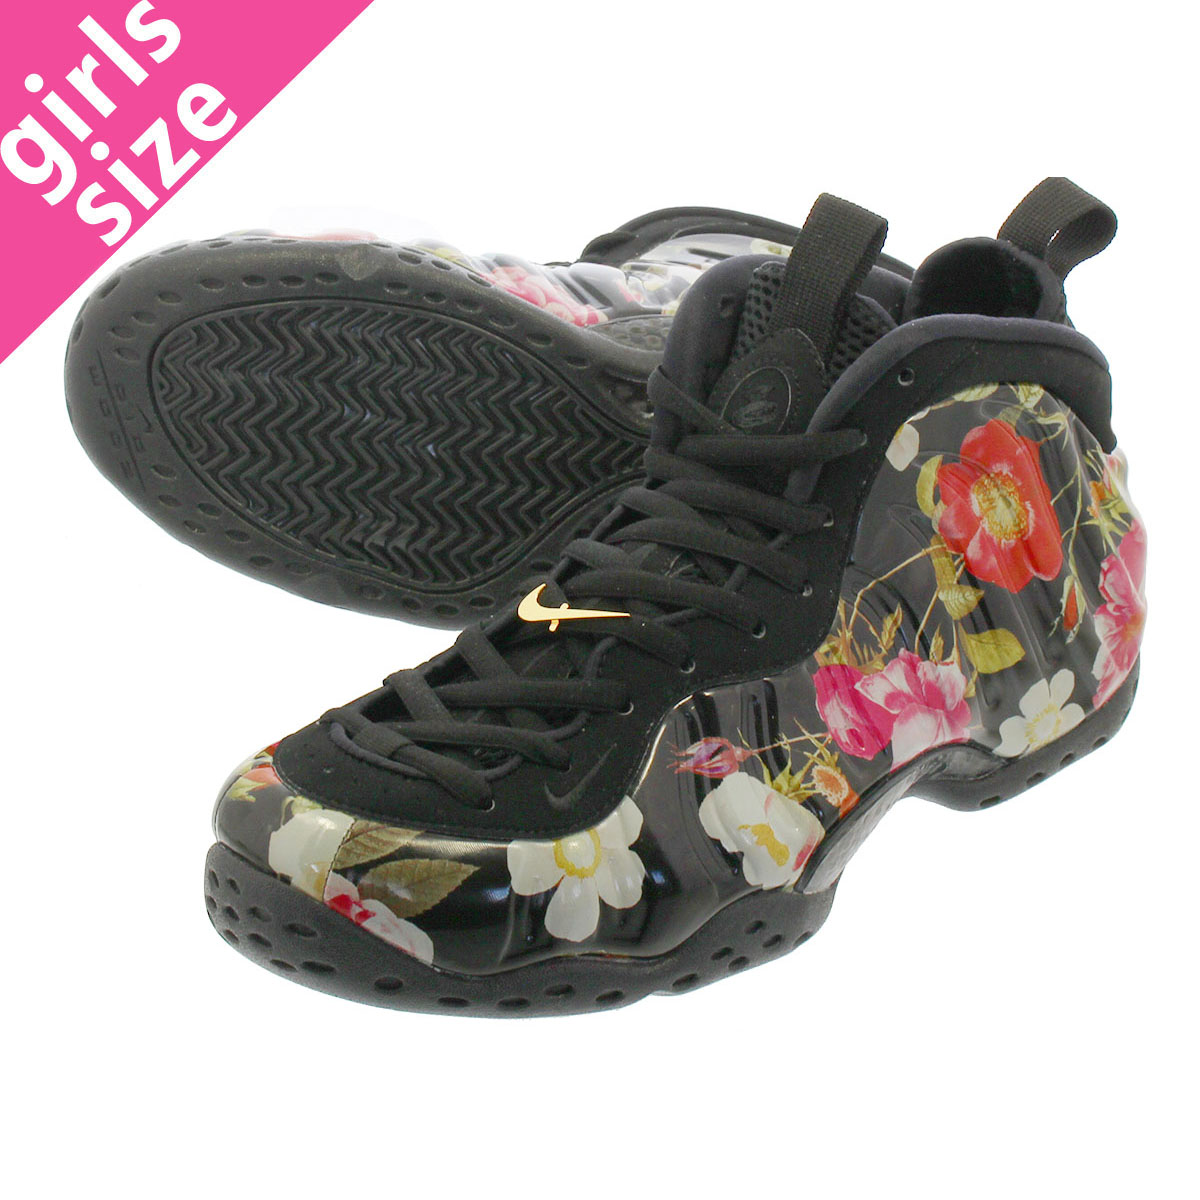 NIKE AIR FOAMPOSITE ONE 【FLORAL】 ナイキ エア フォームポジット ワン BLACK/BLACK/WHITE 314996-012